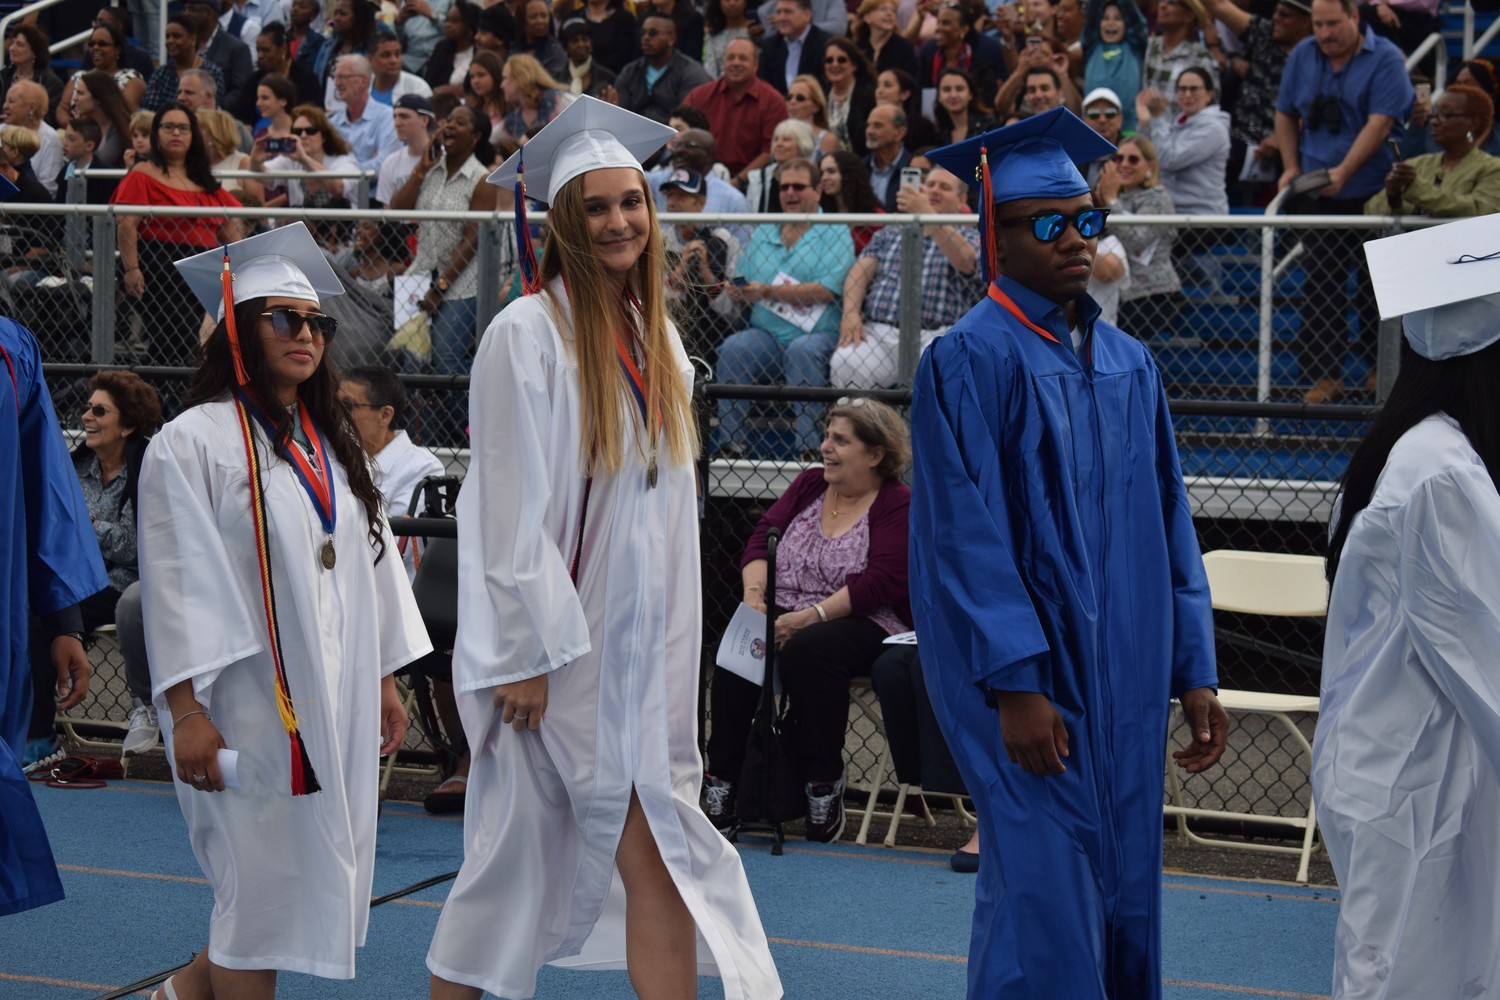 Malverne High School's seniors donned blue and white gowns at their graduation ceremony on June 22, at the high school's football field.